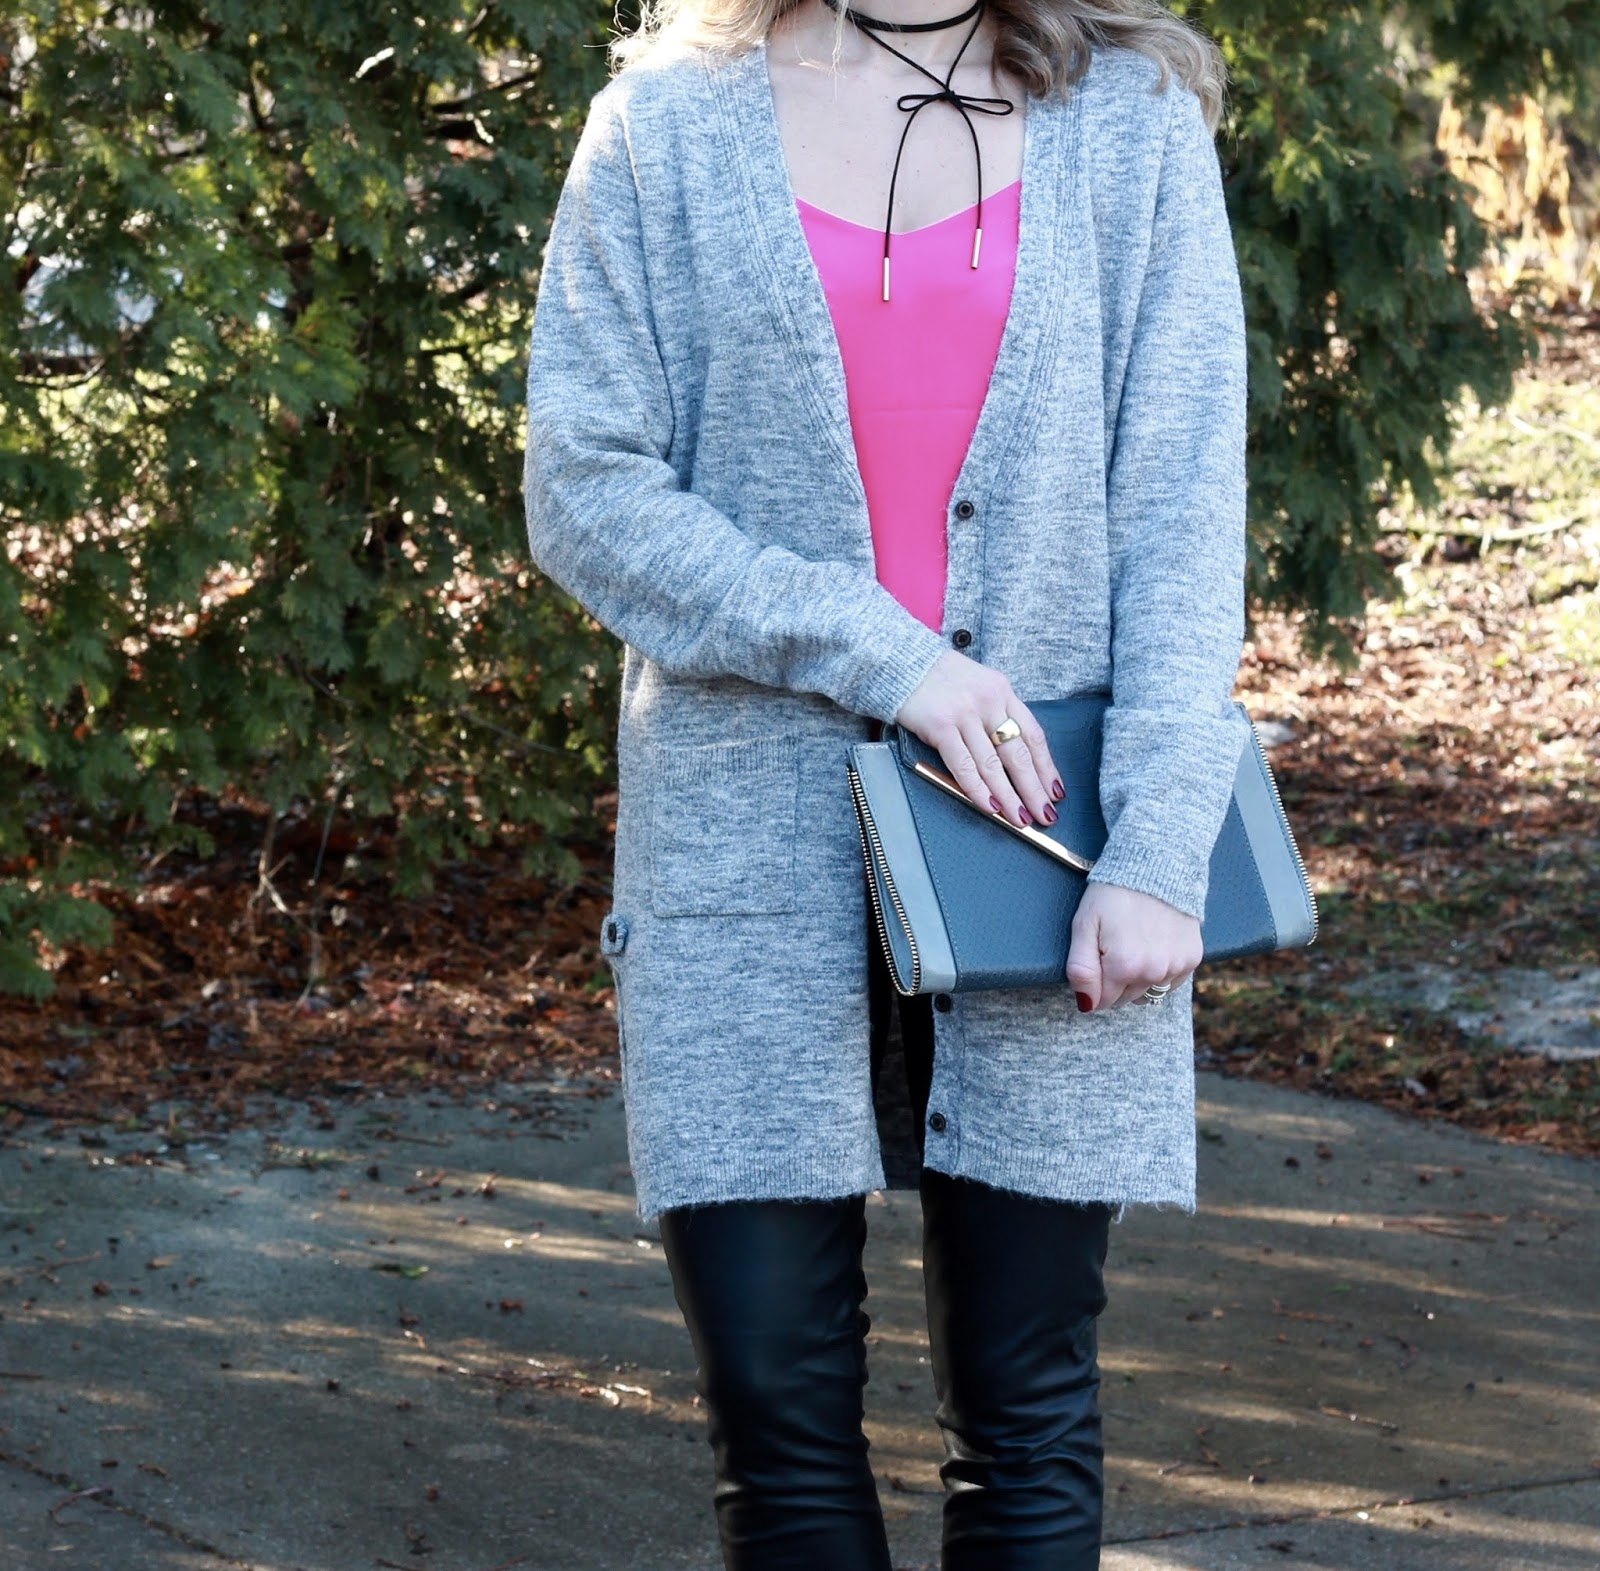 pink Barcelona cami, grey boyfriend cardigan, leather pants, pink heels, grey clutch, Valentine's Day look